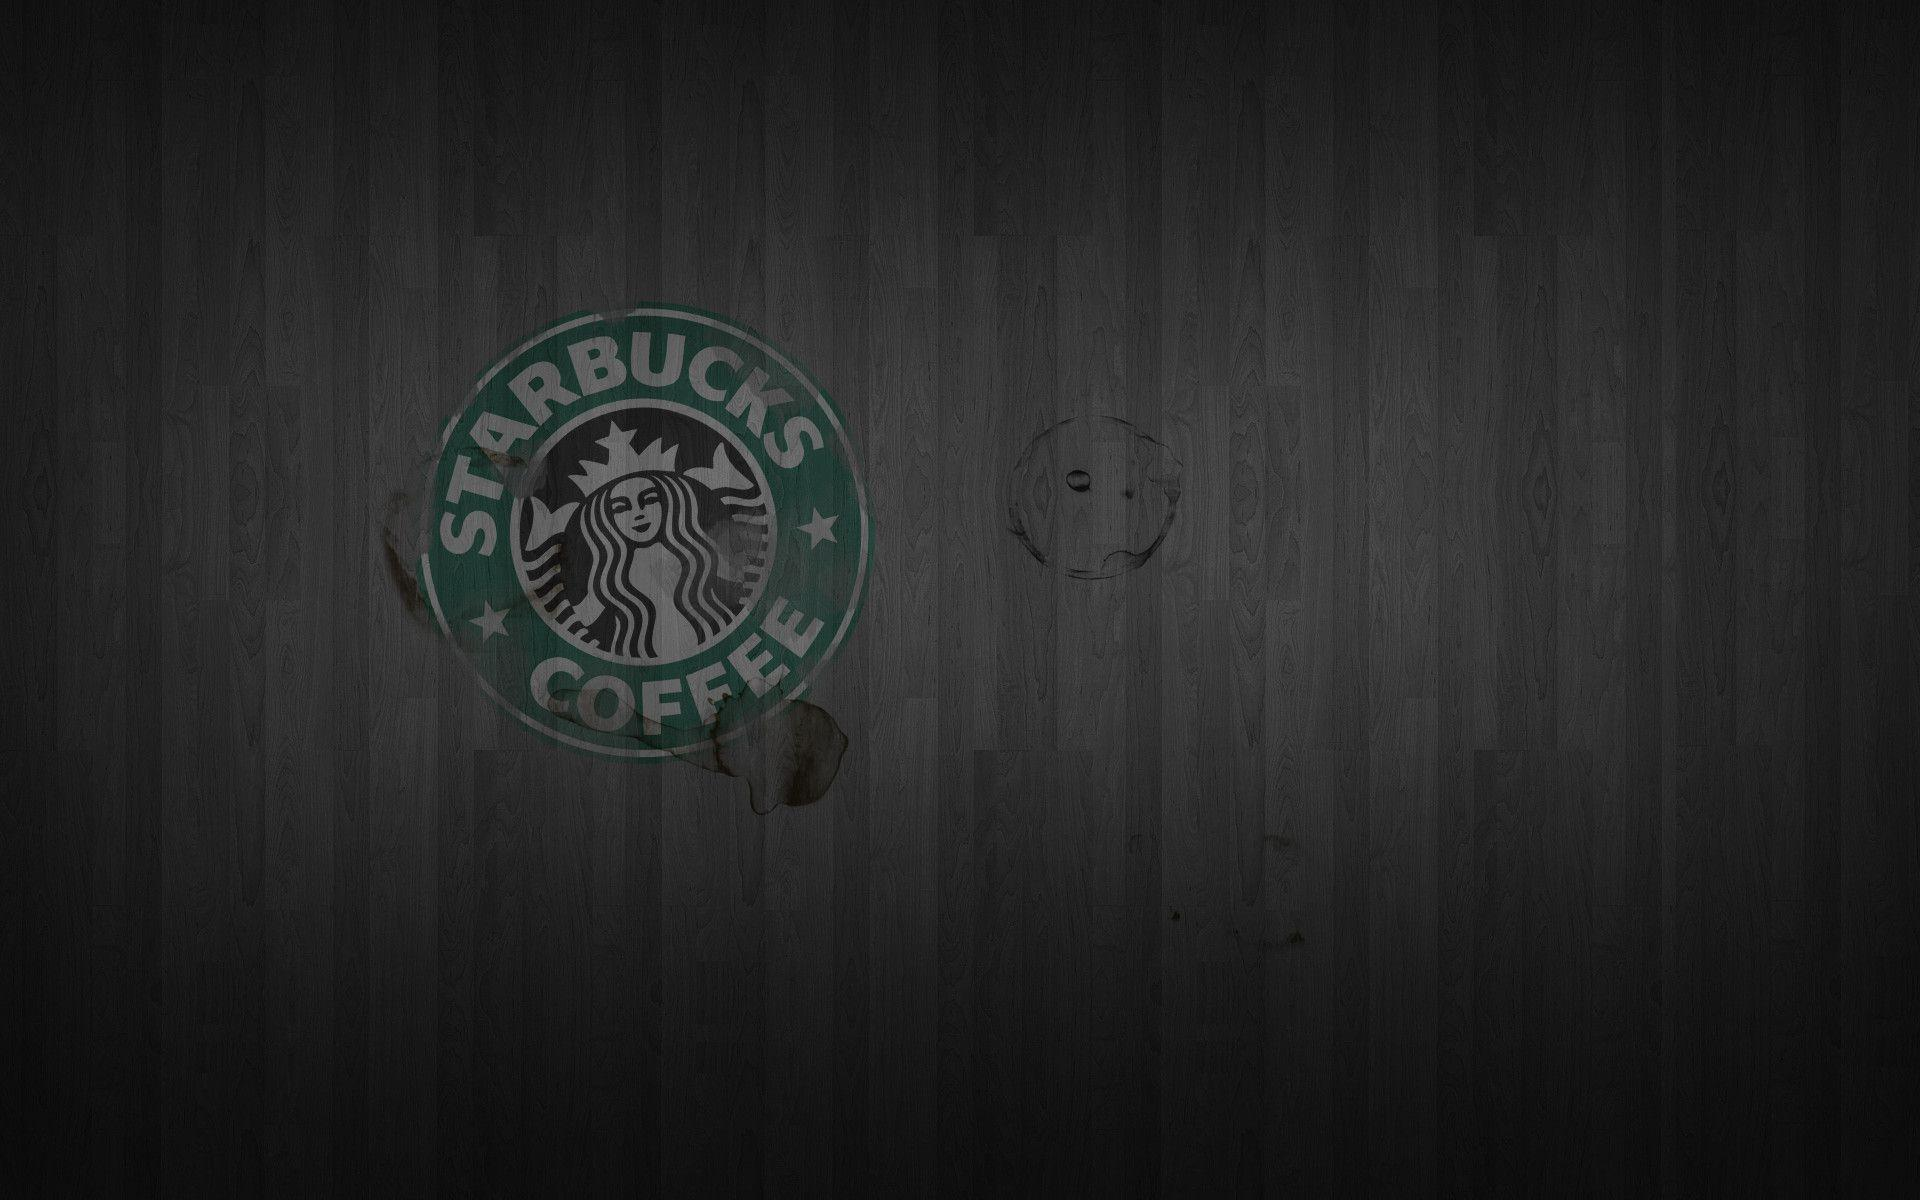 DeviantArt: More Like Starbucks Wallpaper by hastati95